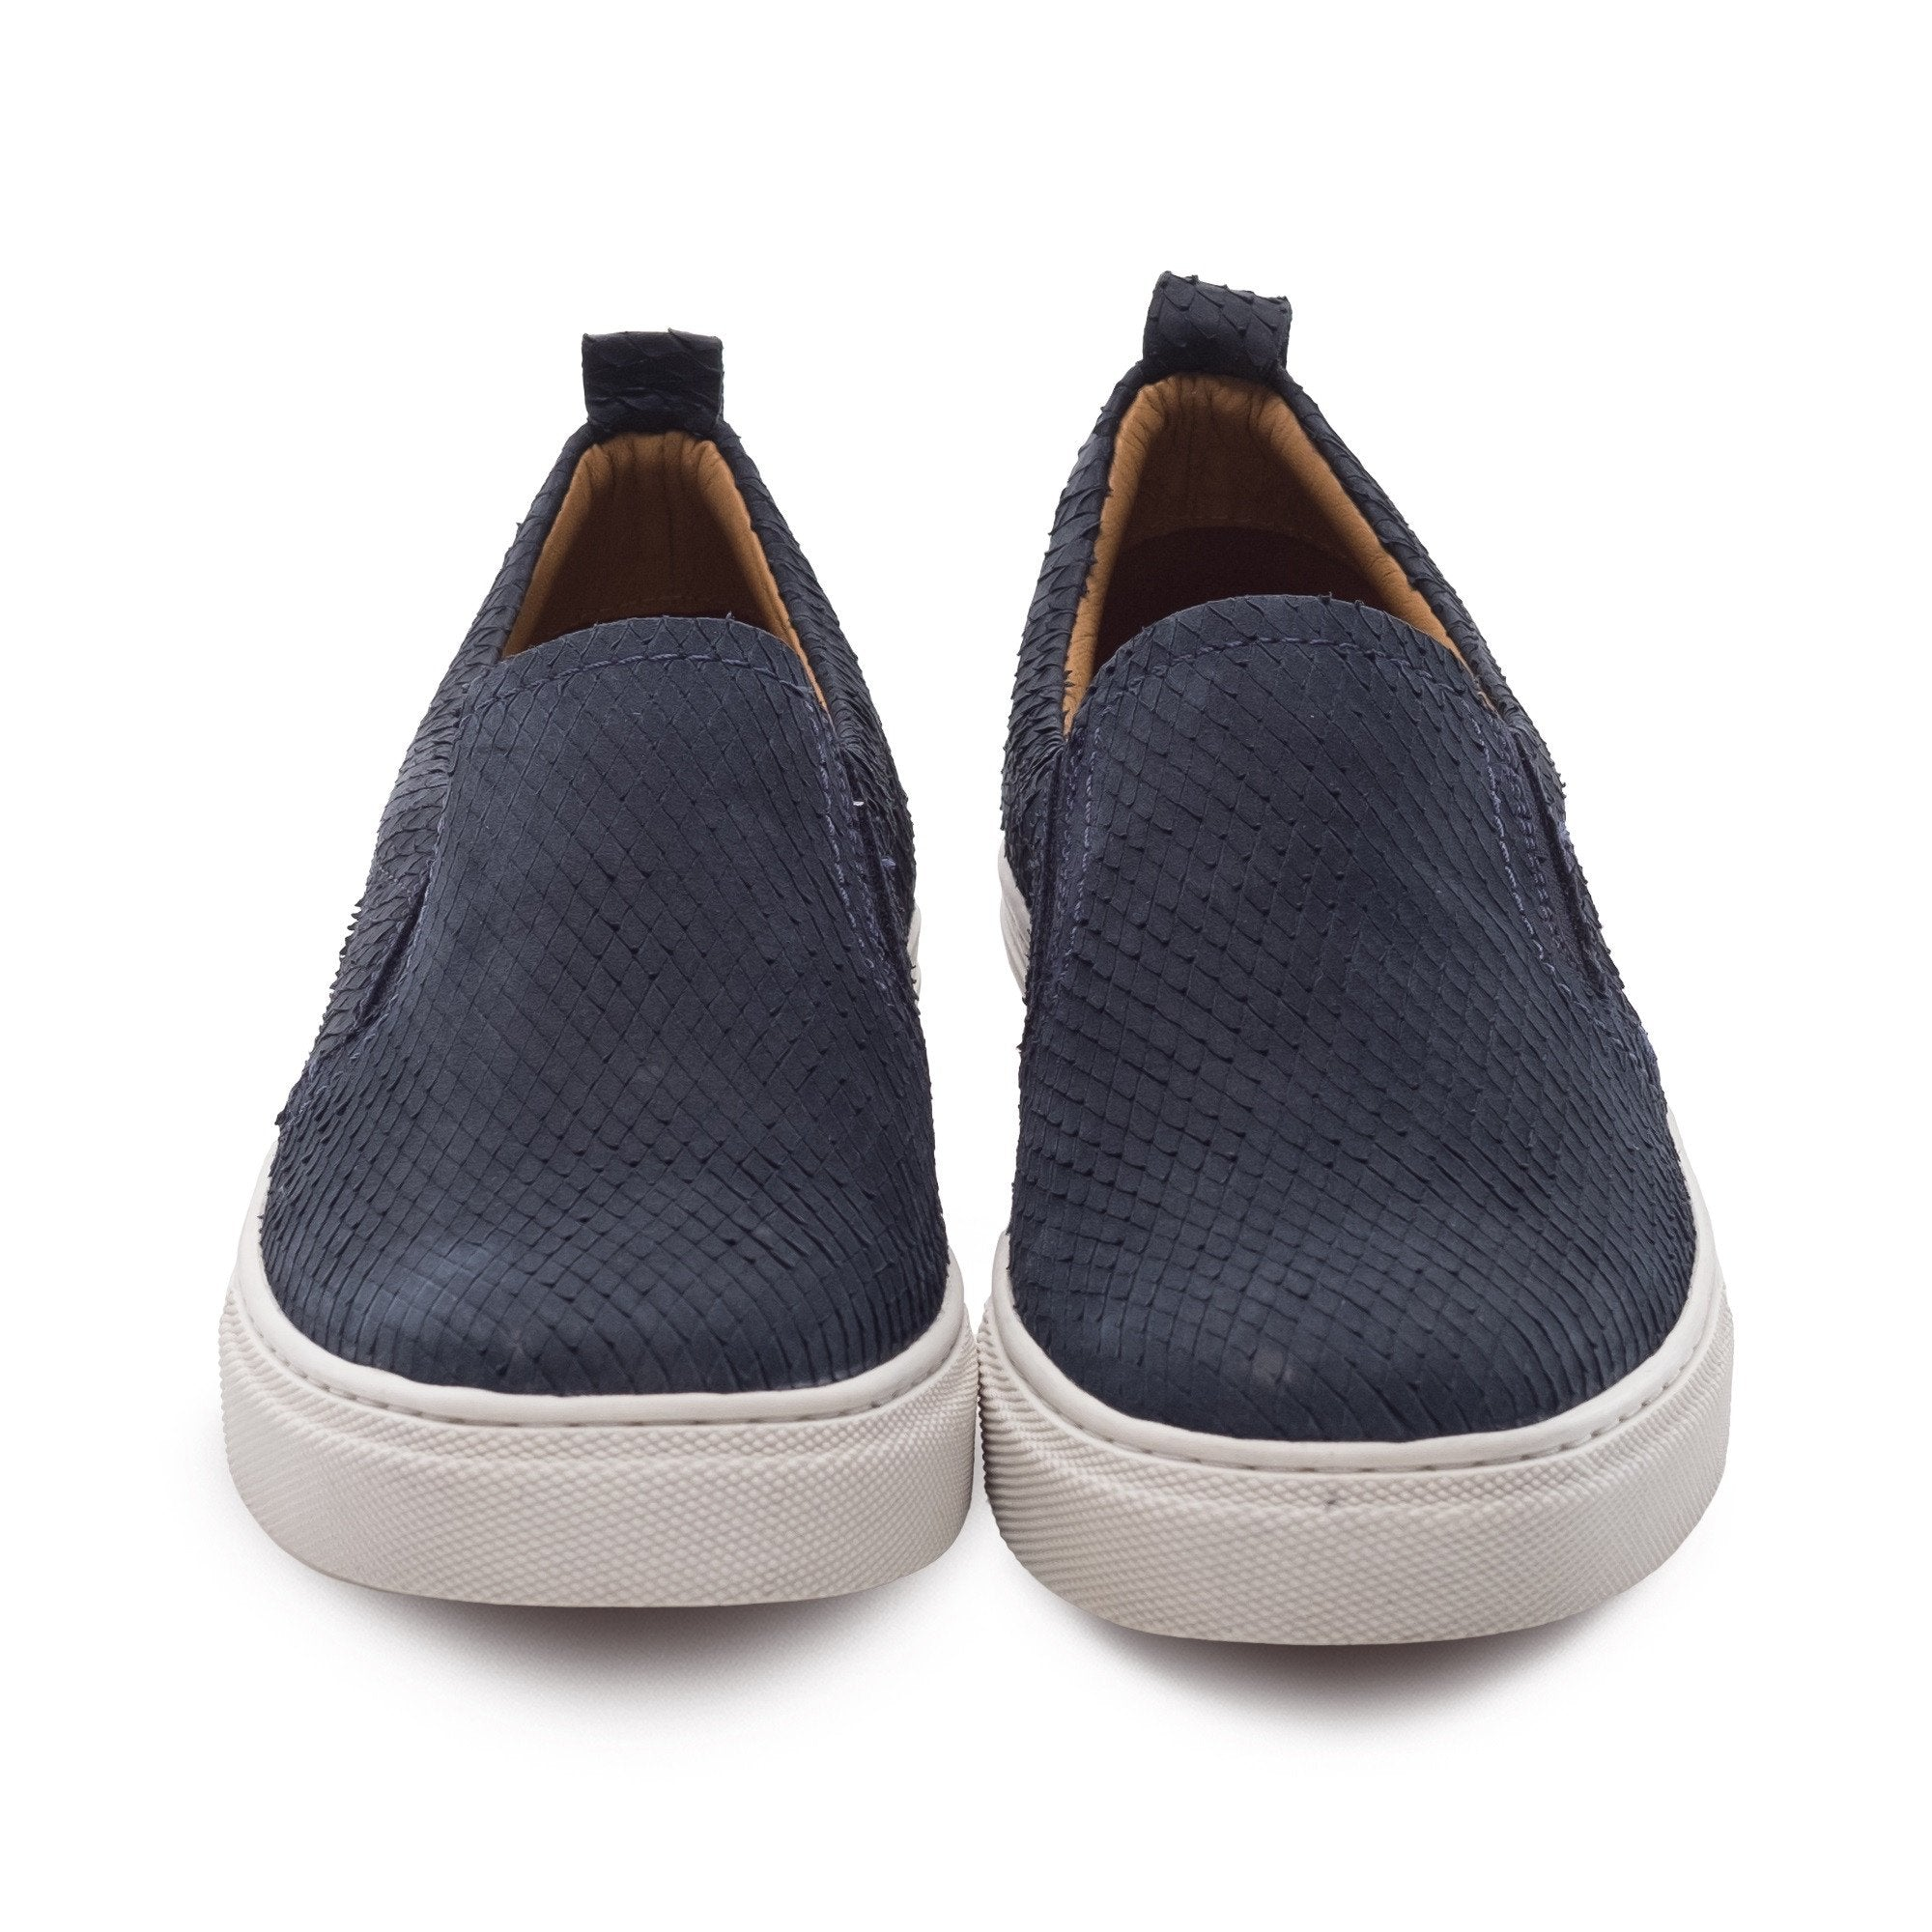 4b10a0943bfe ... J SHOES WOMEN S POVEY NAVY LEATHER CUP SOLE SLIP ON TRAINER ...